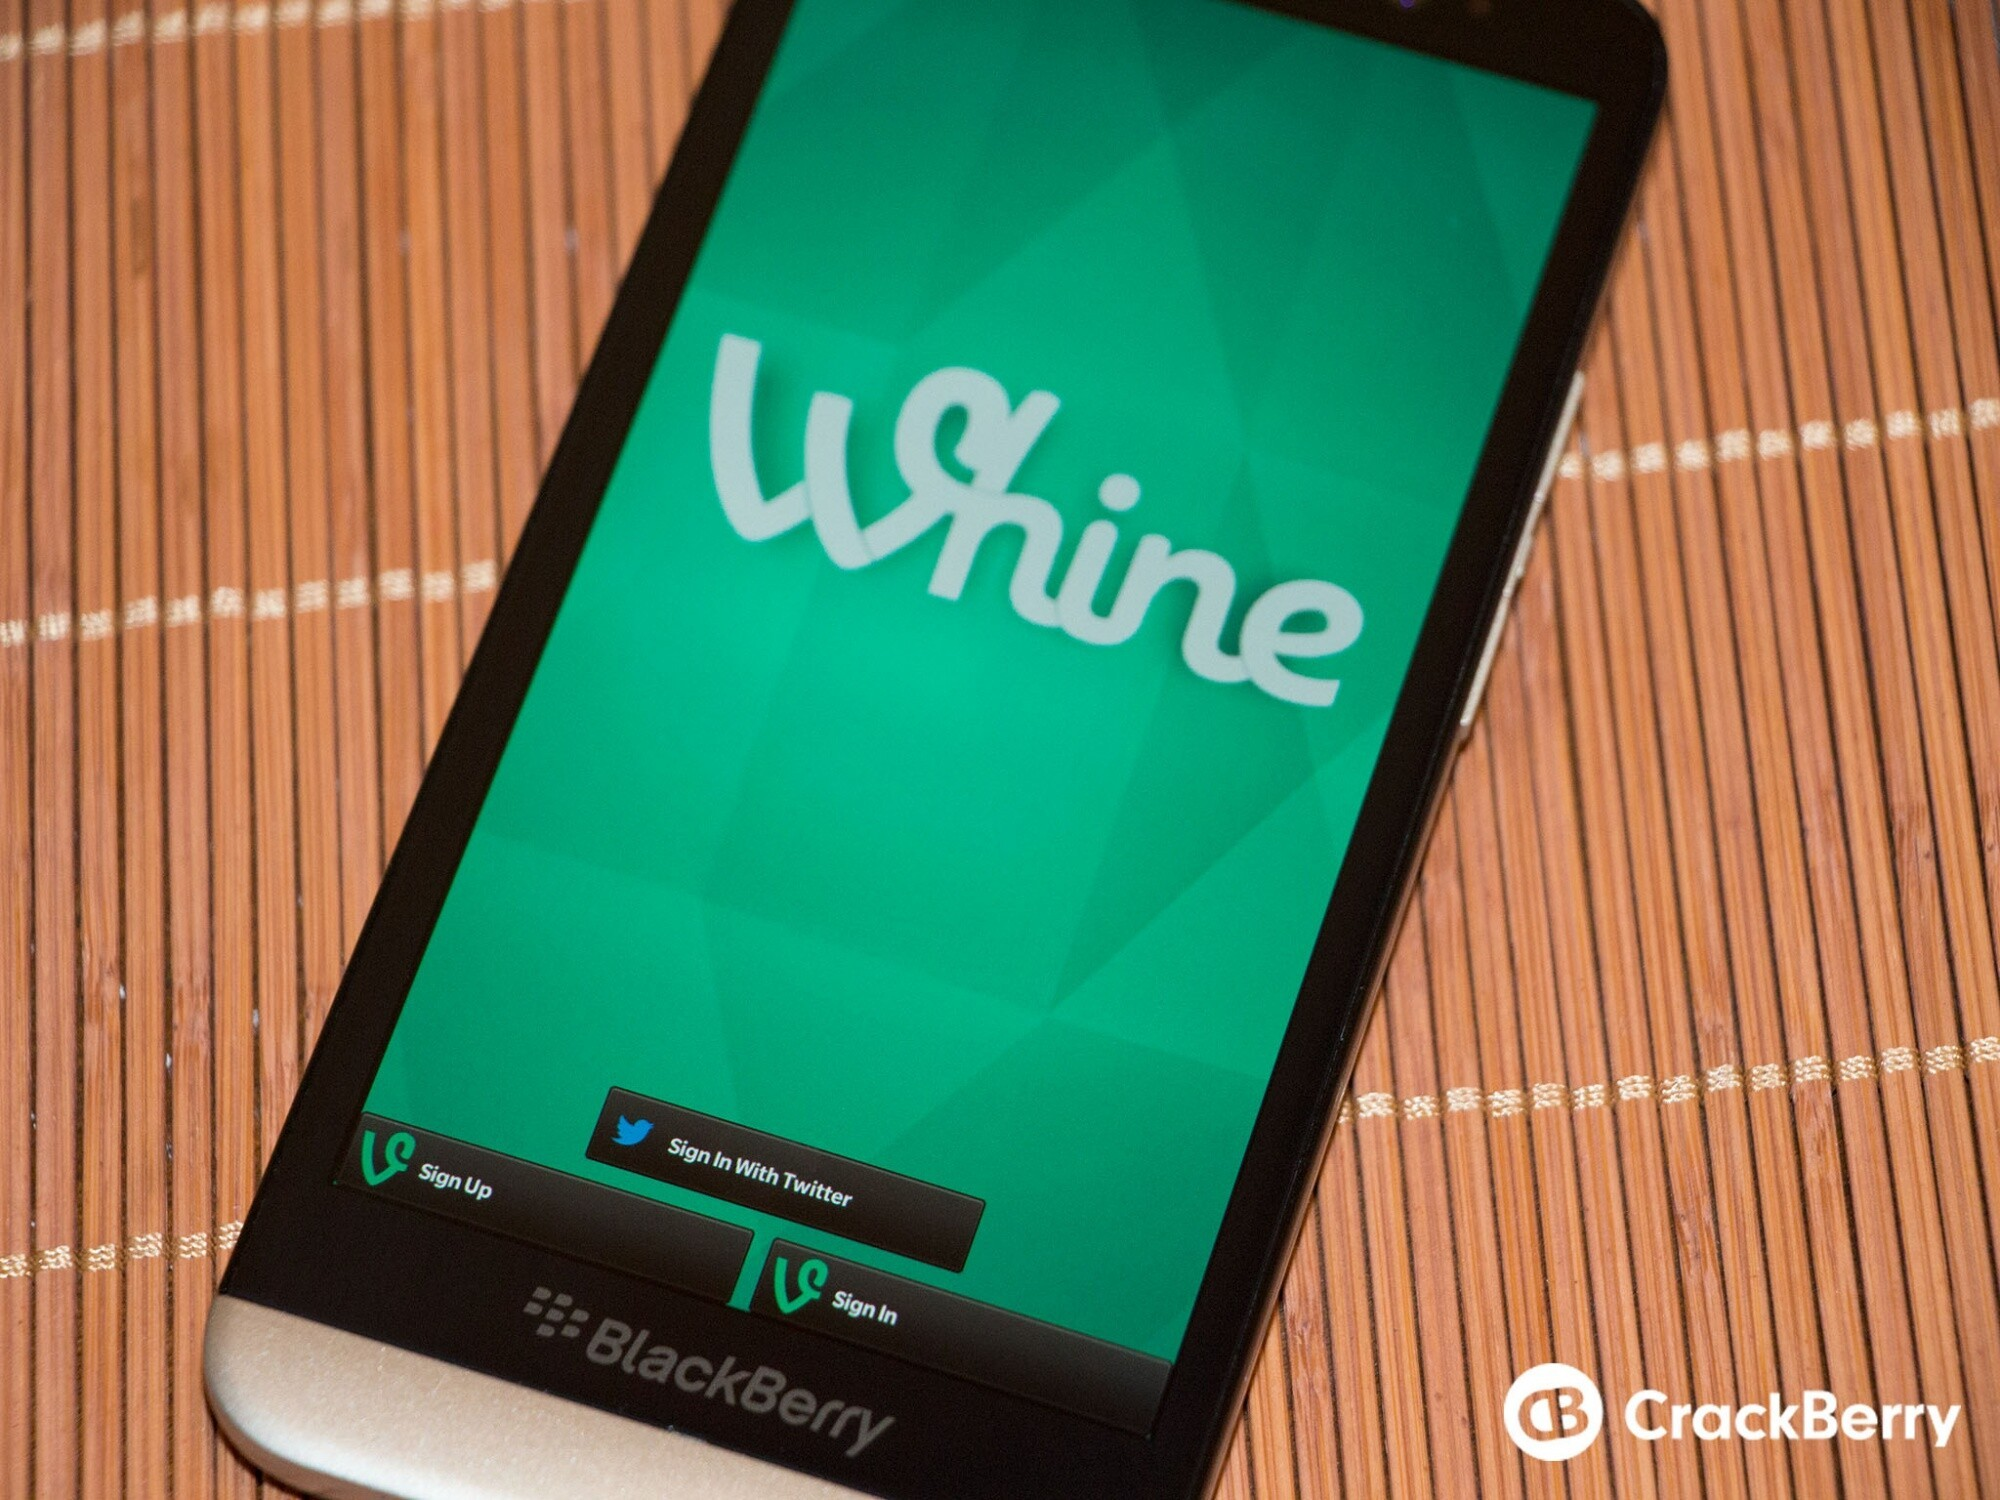 Whine v3.0 rolls out with new design layout, bug fixes and more